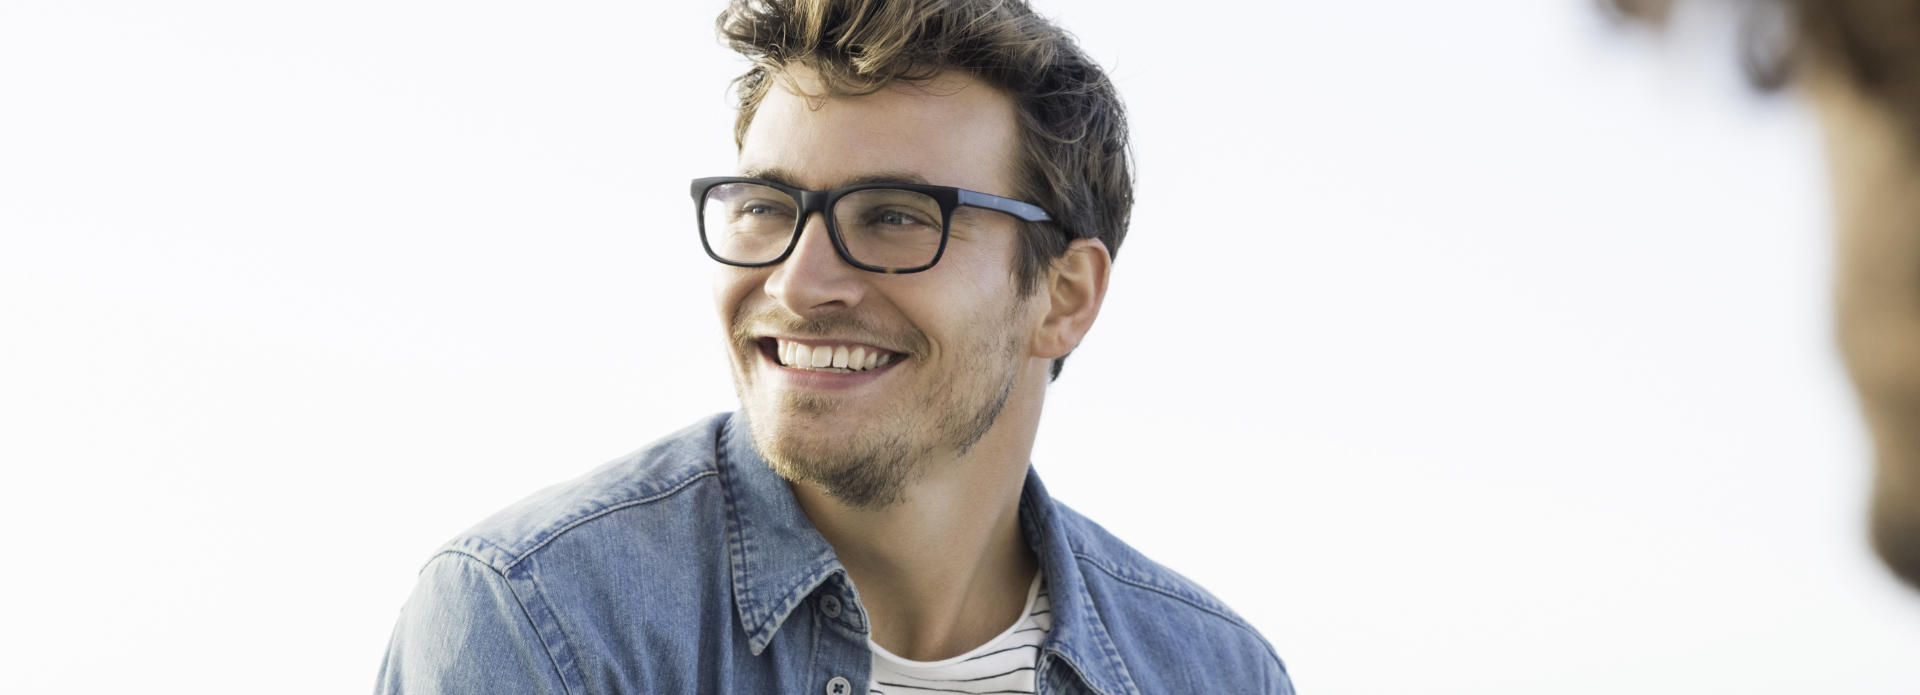 cheerful man in glasses